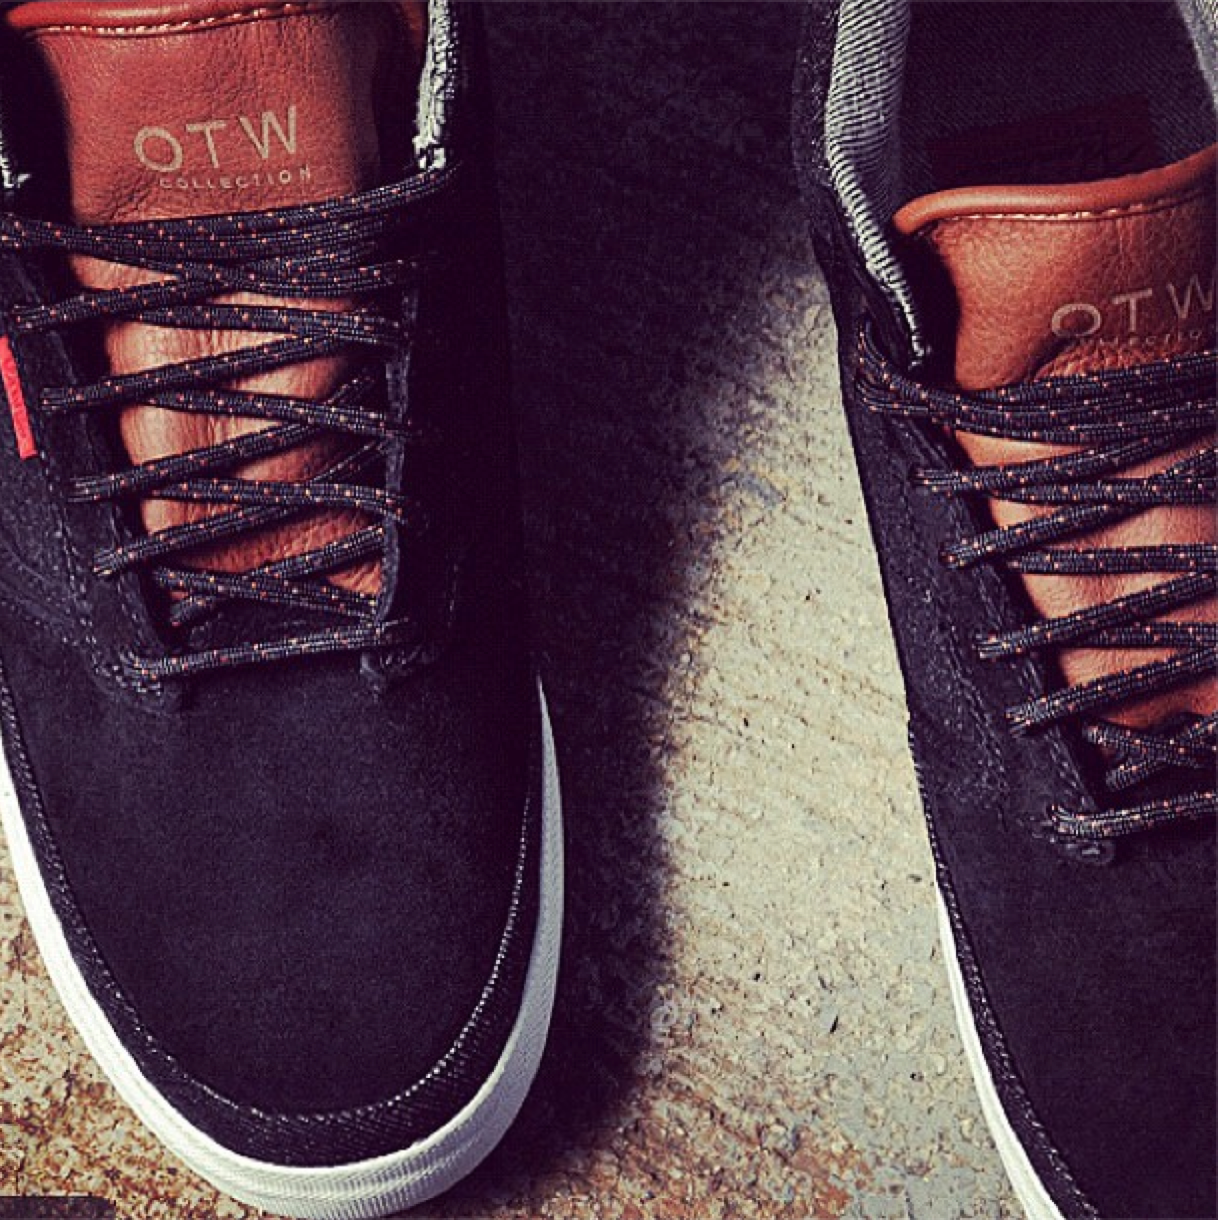 Primitive x Vans OTW Bedford 'The Blvd' Teaser